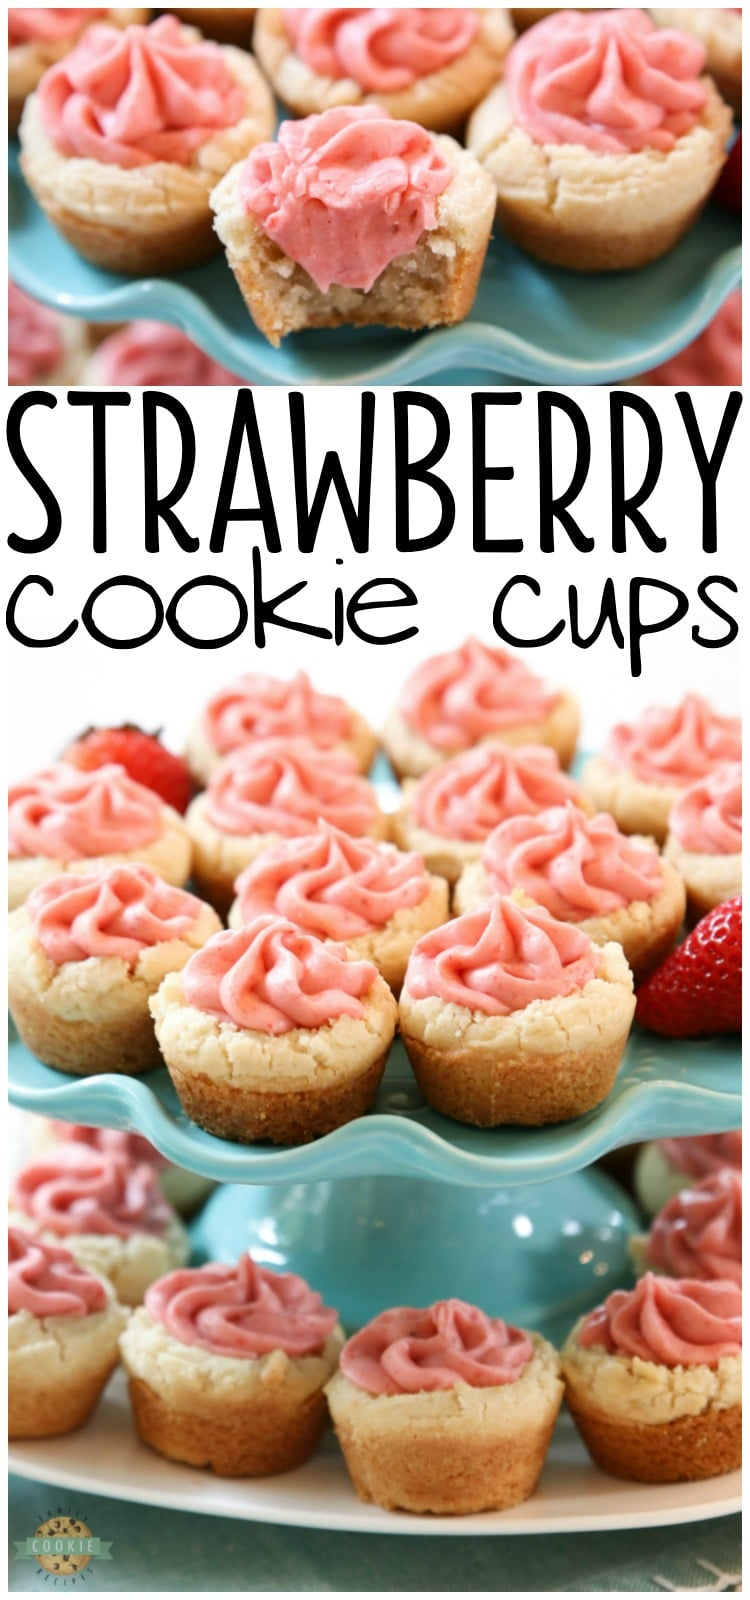 Strawberry Cookie Cups are bite-sized treats made with the best buttercream strawberry frosting ever. Made with fresh strawberries, there just aren't better strawberry cookies than these! via @buttergirls